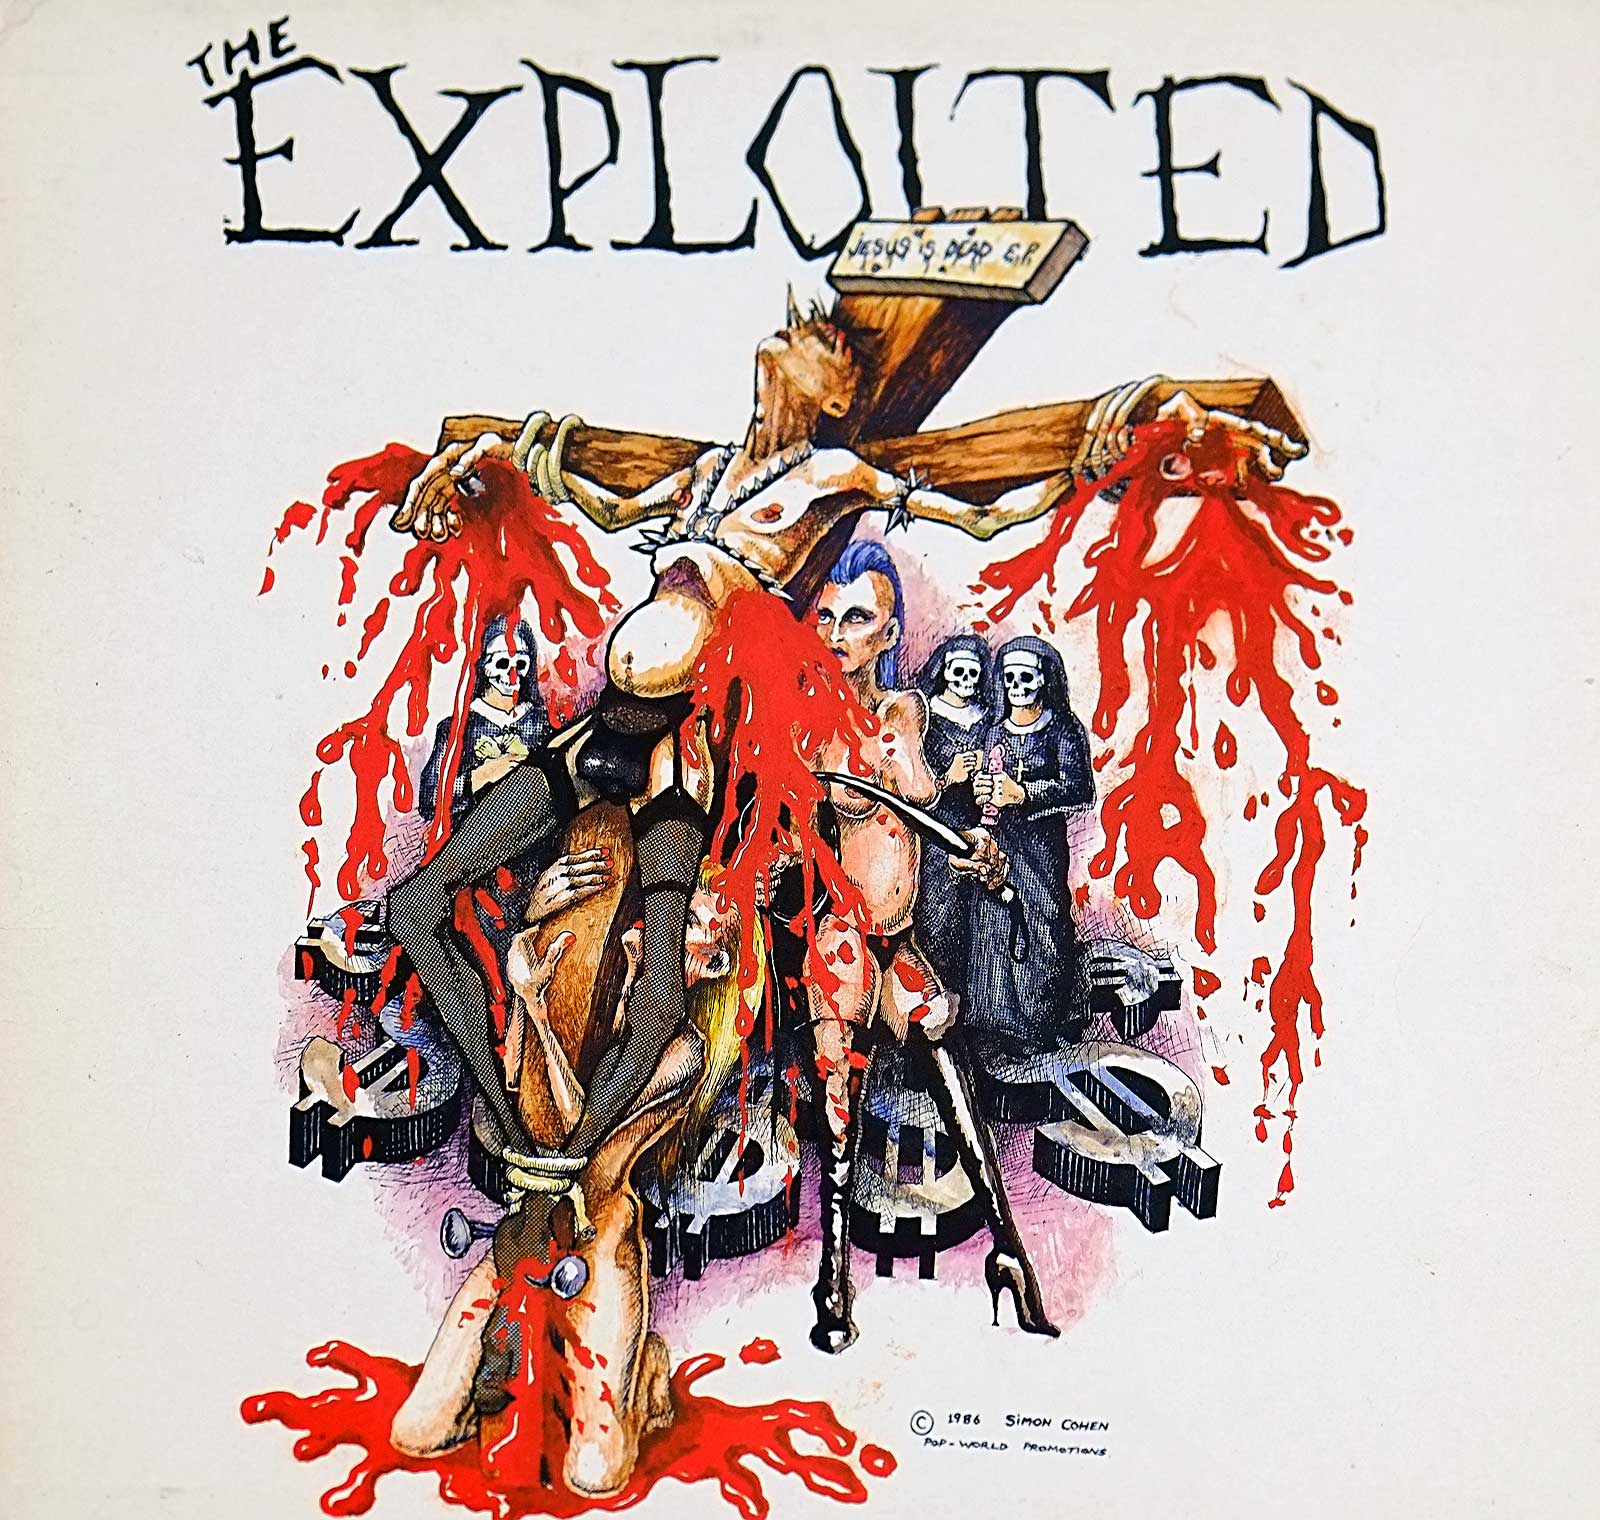 large photo of the album front cover of: EXPLOITED JESUS IS DEAD ROUGH JUSTICE